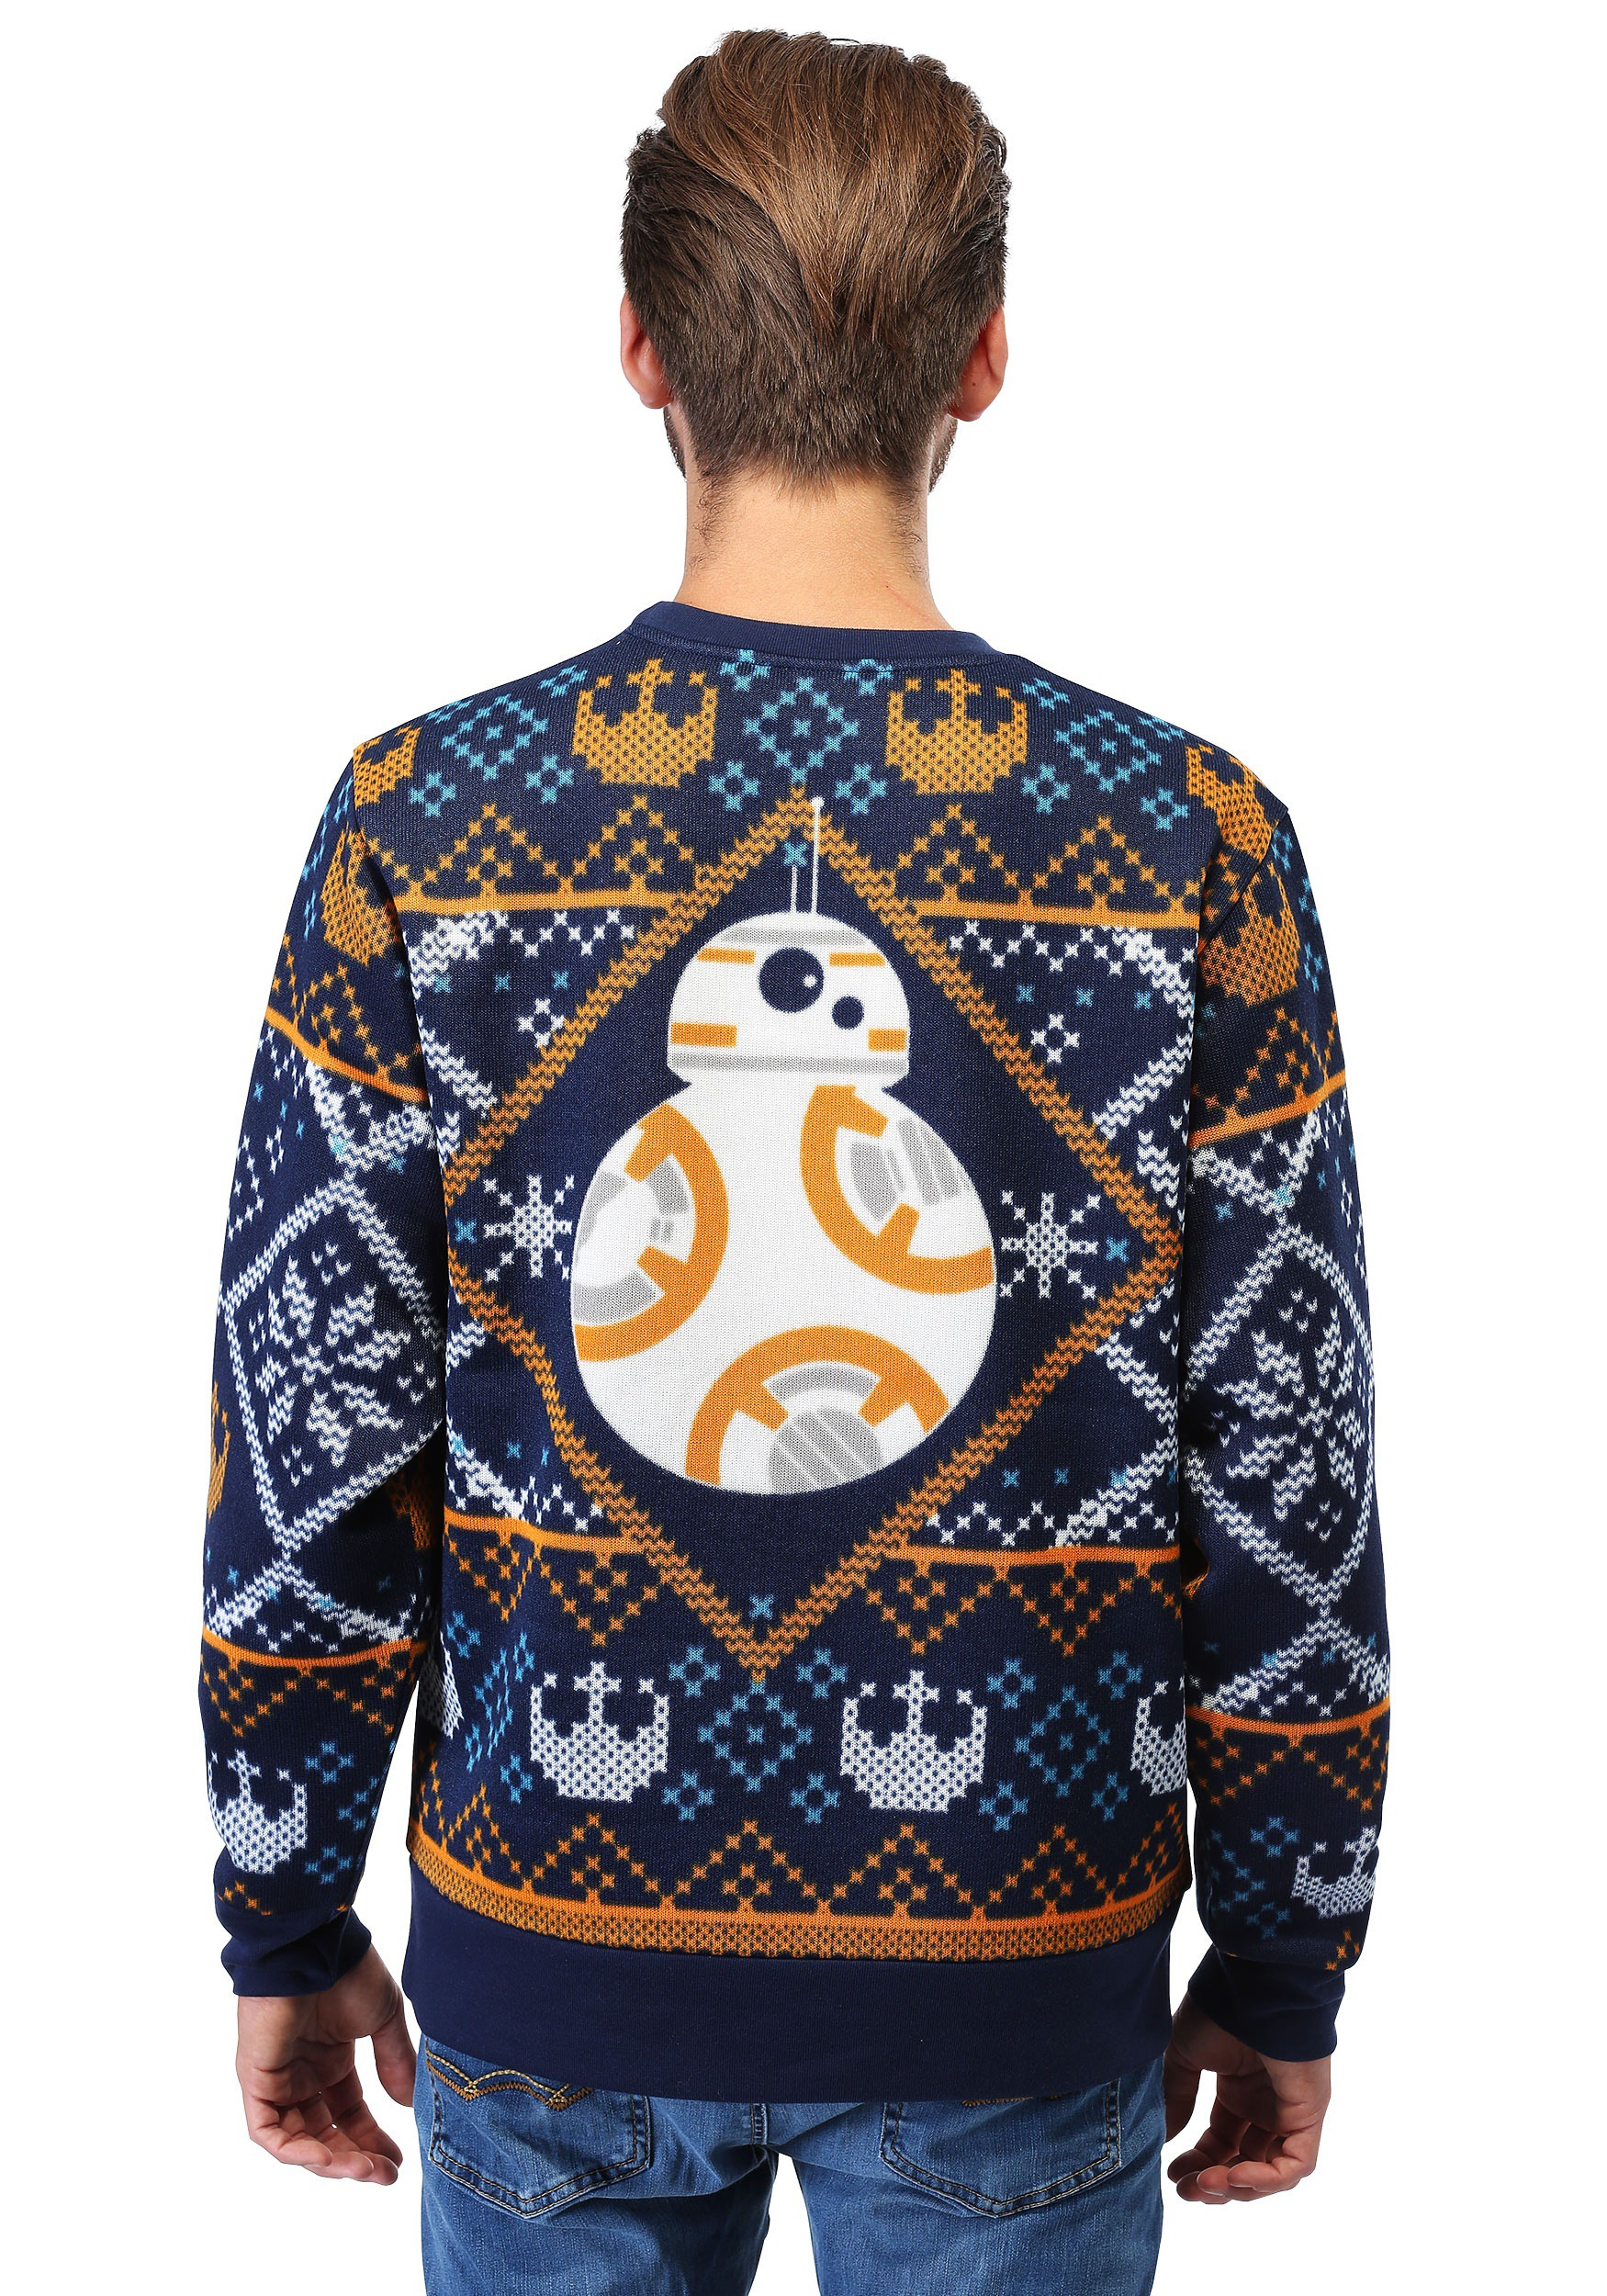 Star Wars Bb8 Navy Ugly Christmas Sweater For Adults